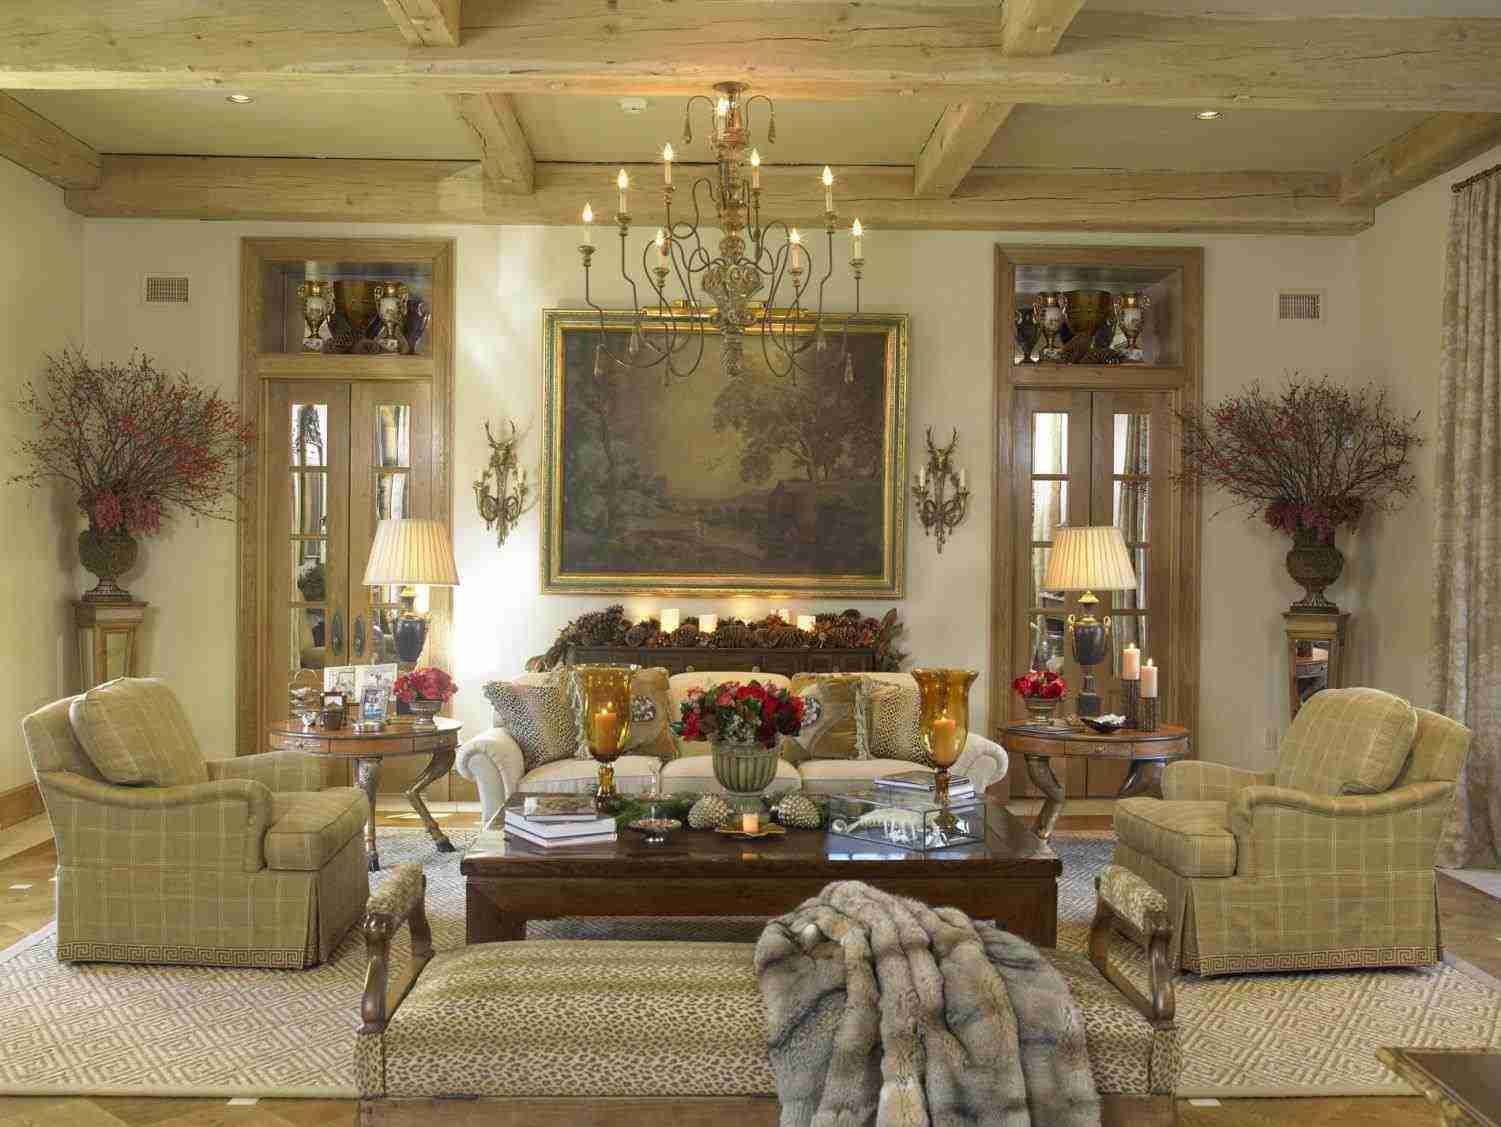 47 Old Fashioned How To Decorate Living Room Ideas Decortez Italian Living Room Italian Interior Design Italian Home Decor #old #world #living #room